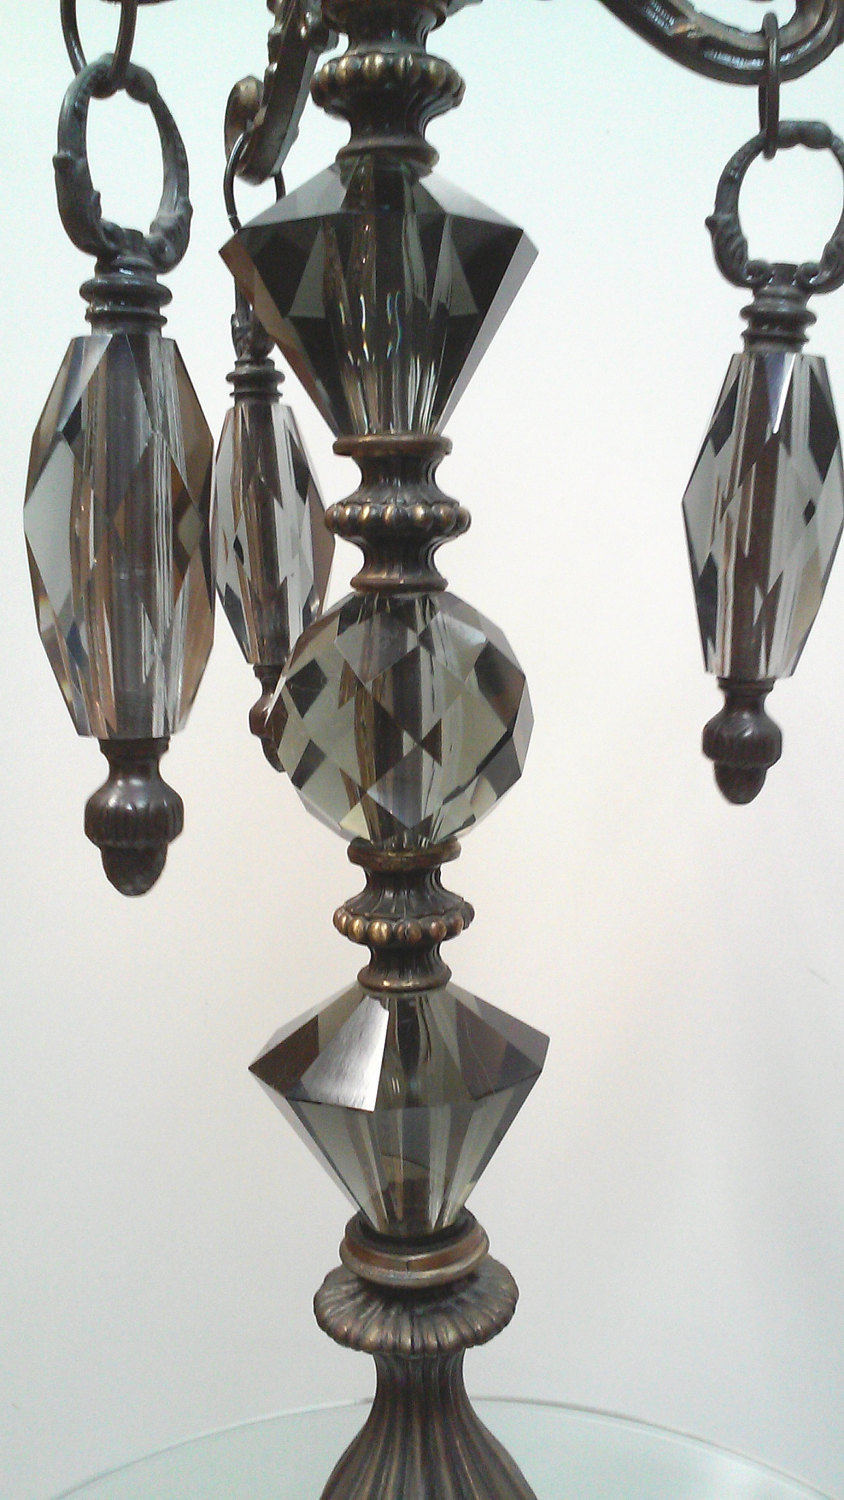 Hollywood Regency Smoked Glass and Marble Ornate Floor Lamp with Attached Table